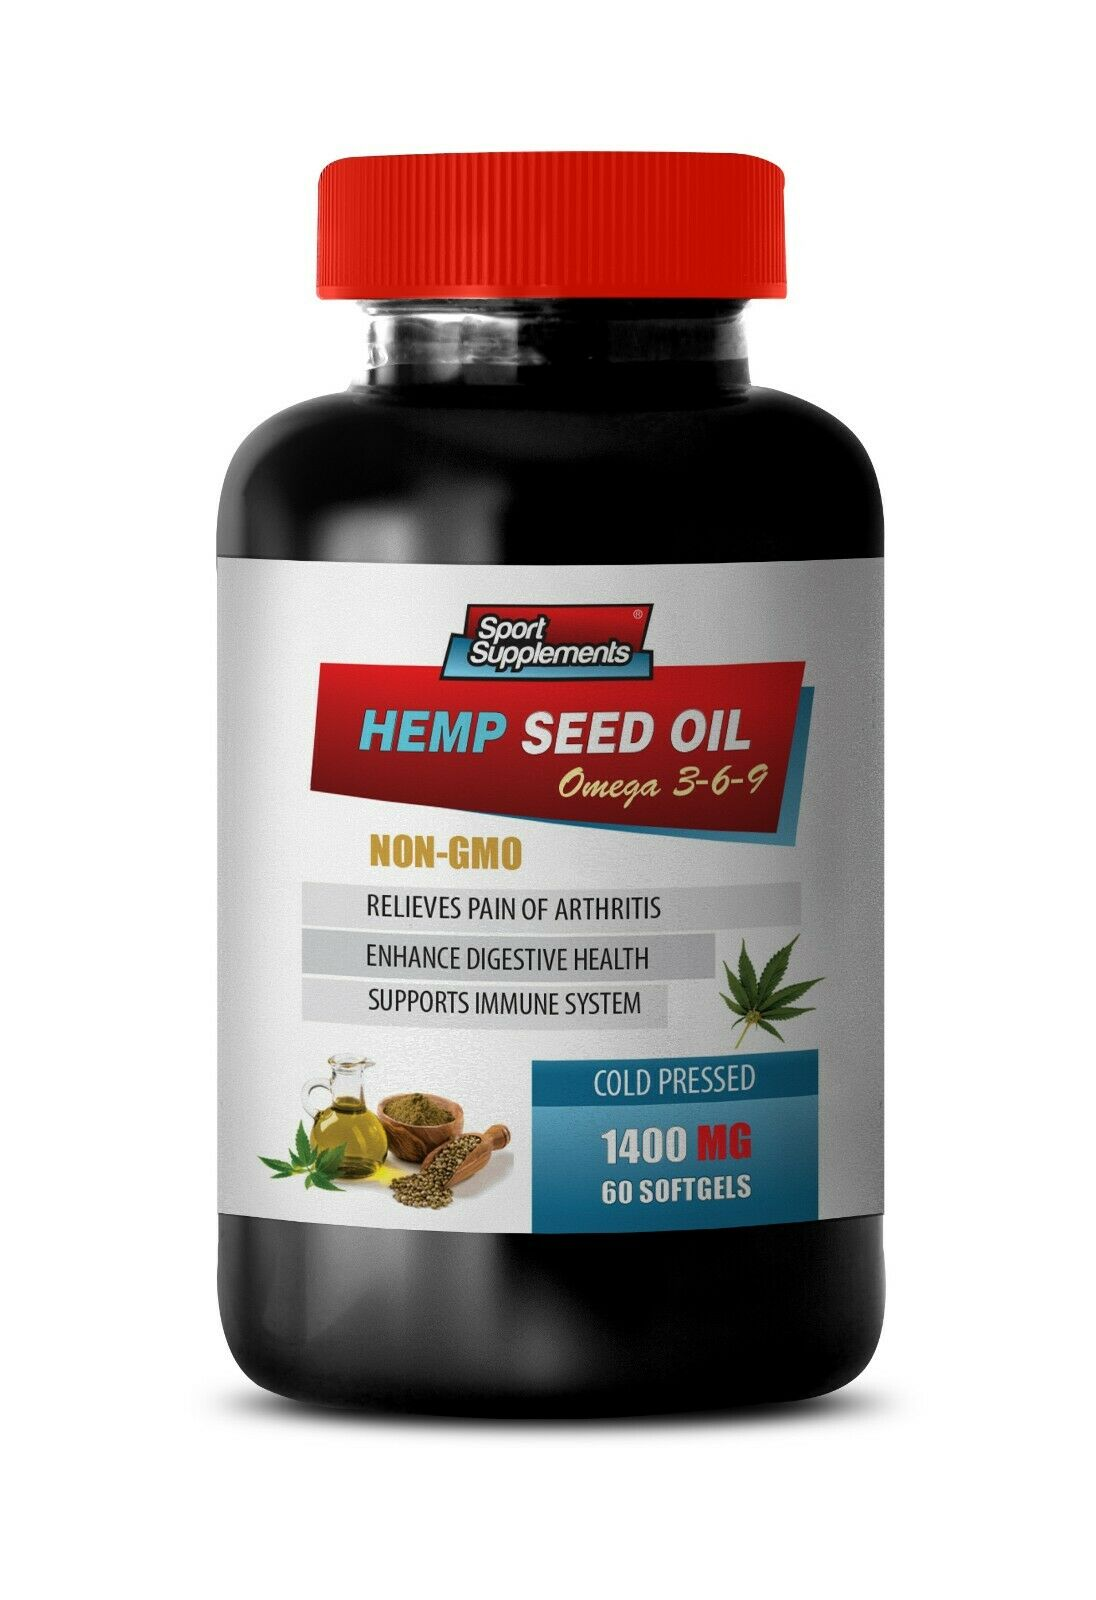 soothe join pain - ORGANIC HEMP SEED OIL 1400mg (1) - dietary supplement